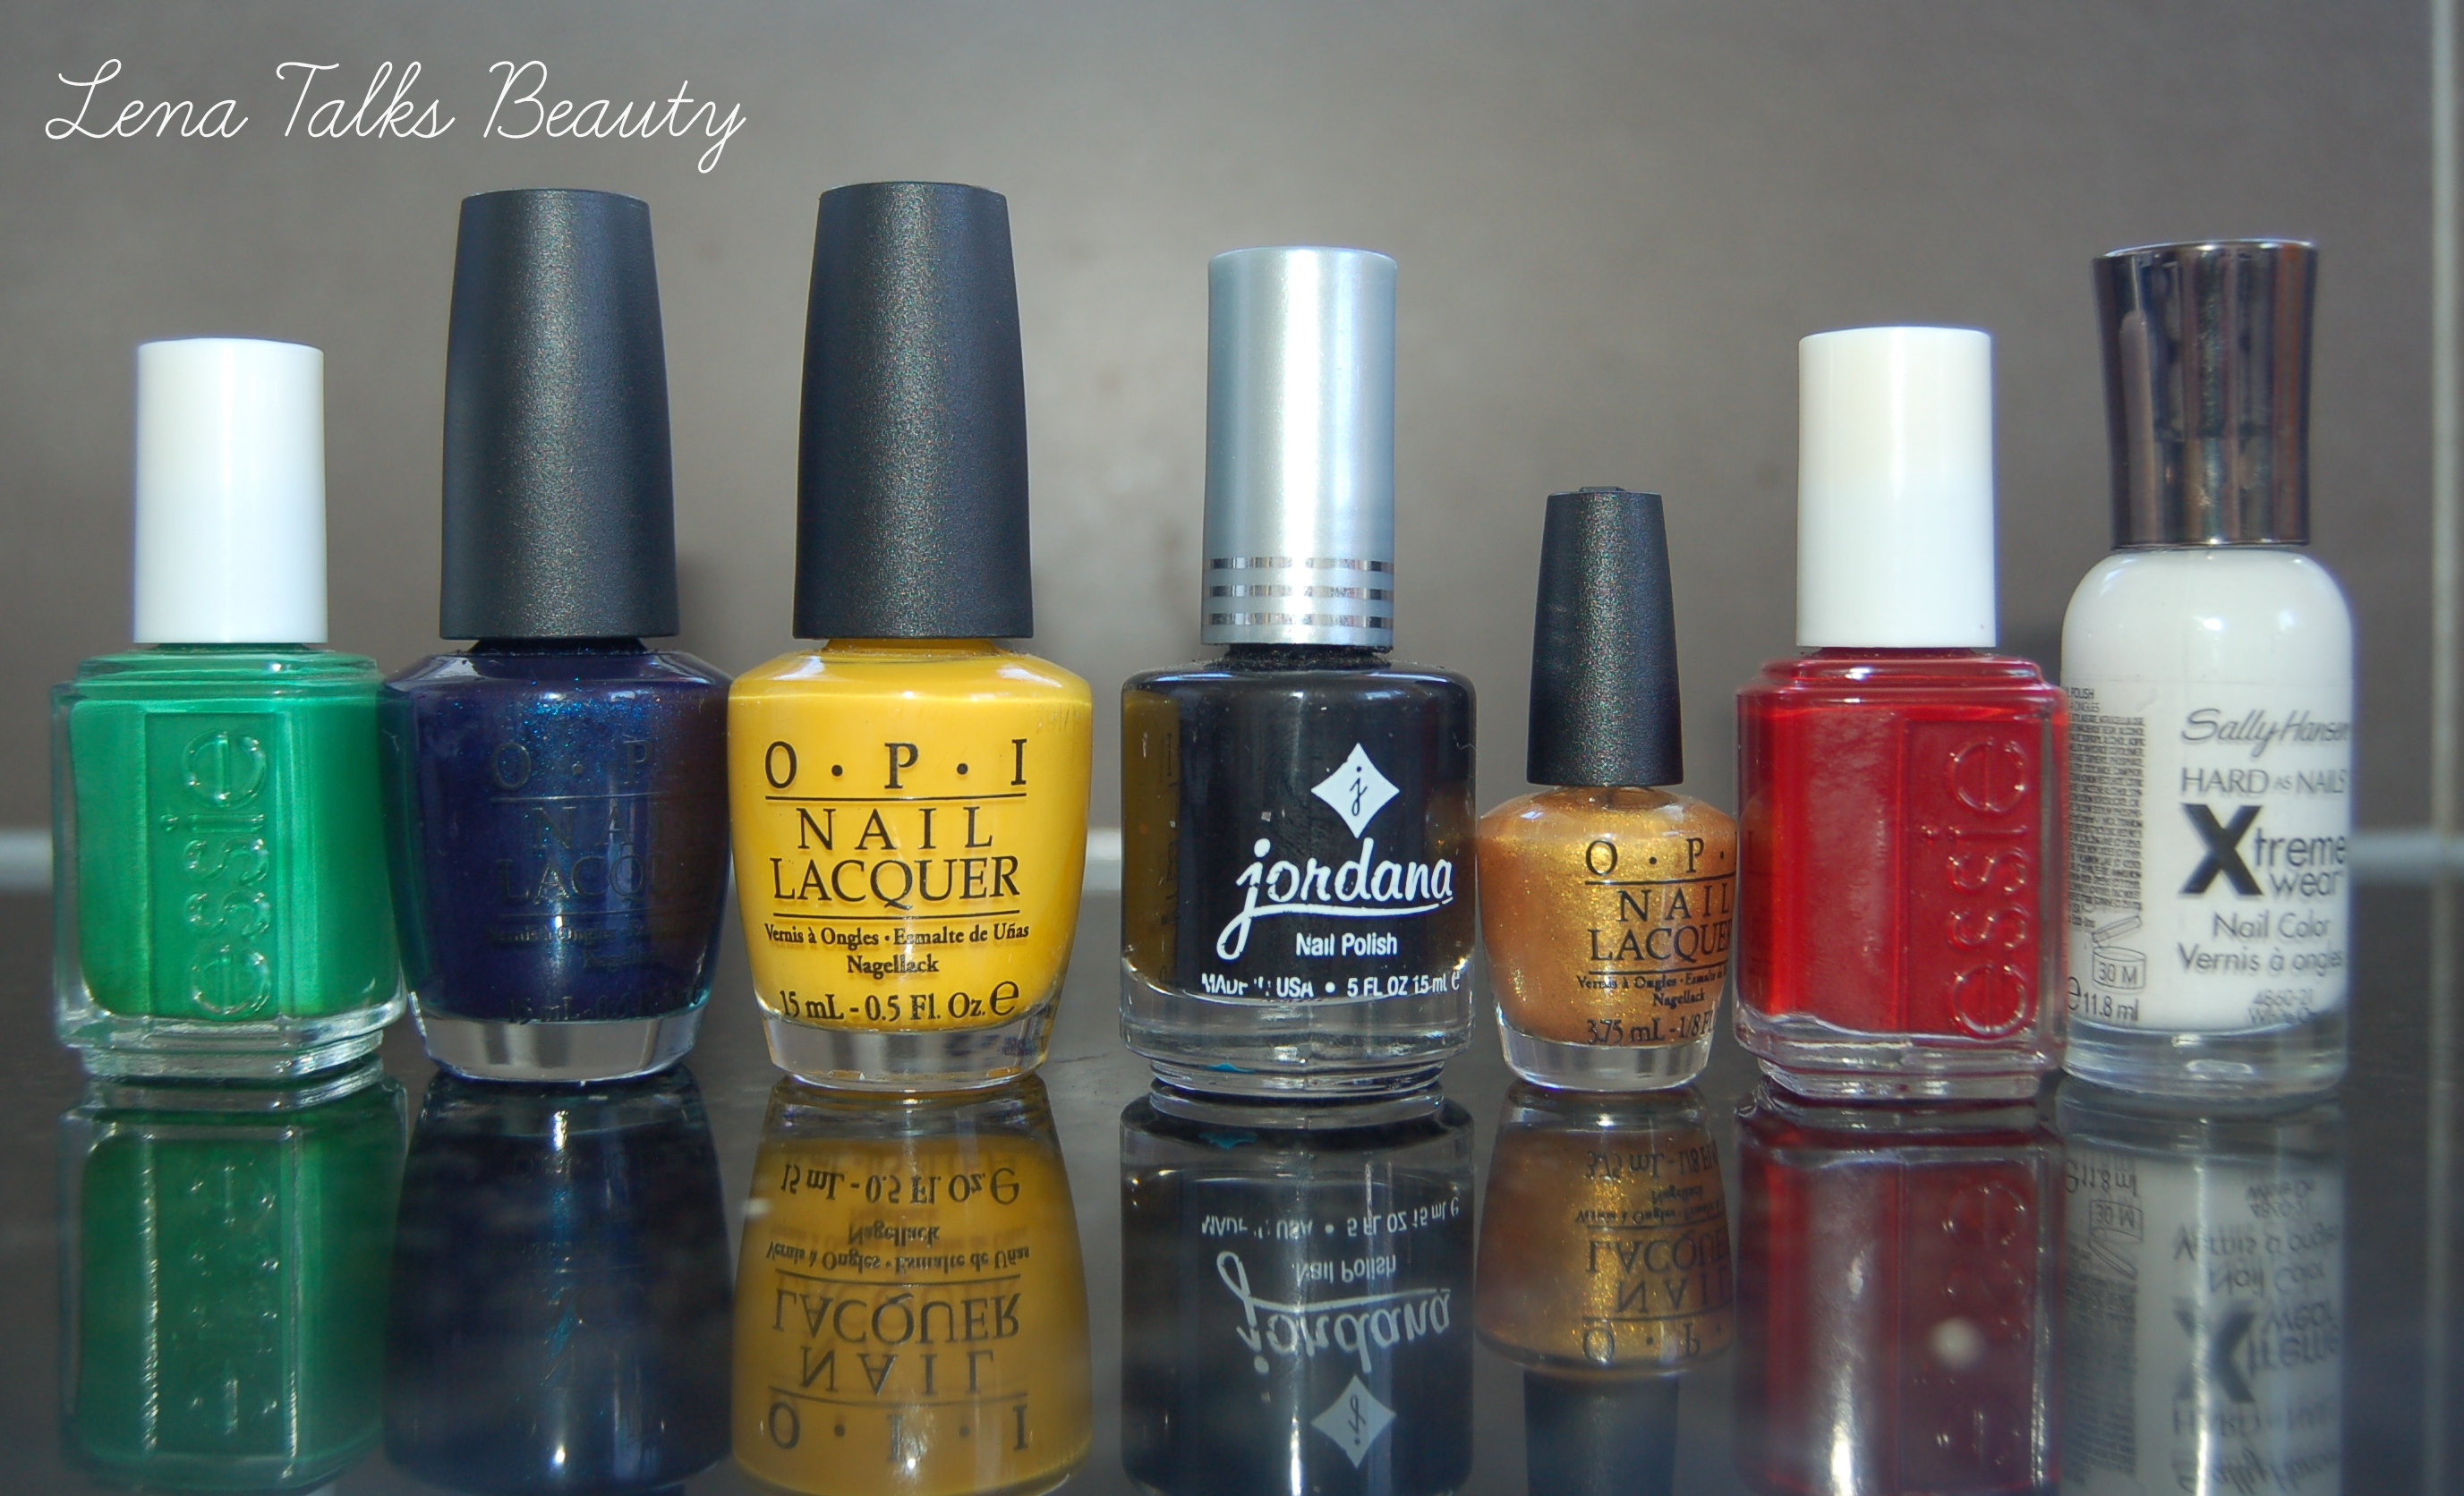 OPI, Essie, Jordana, Sally Hansen polishes